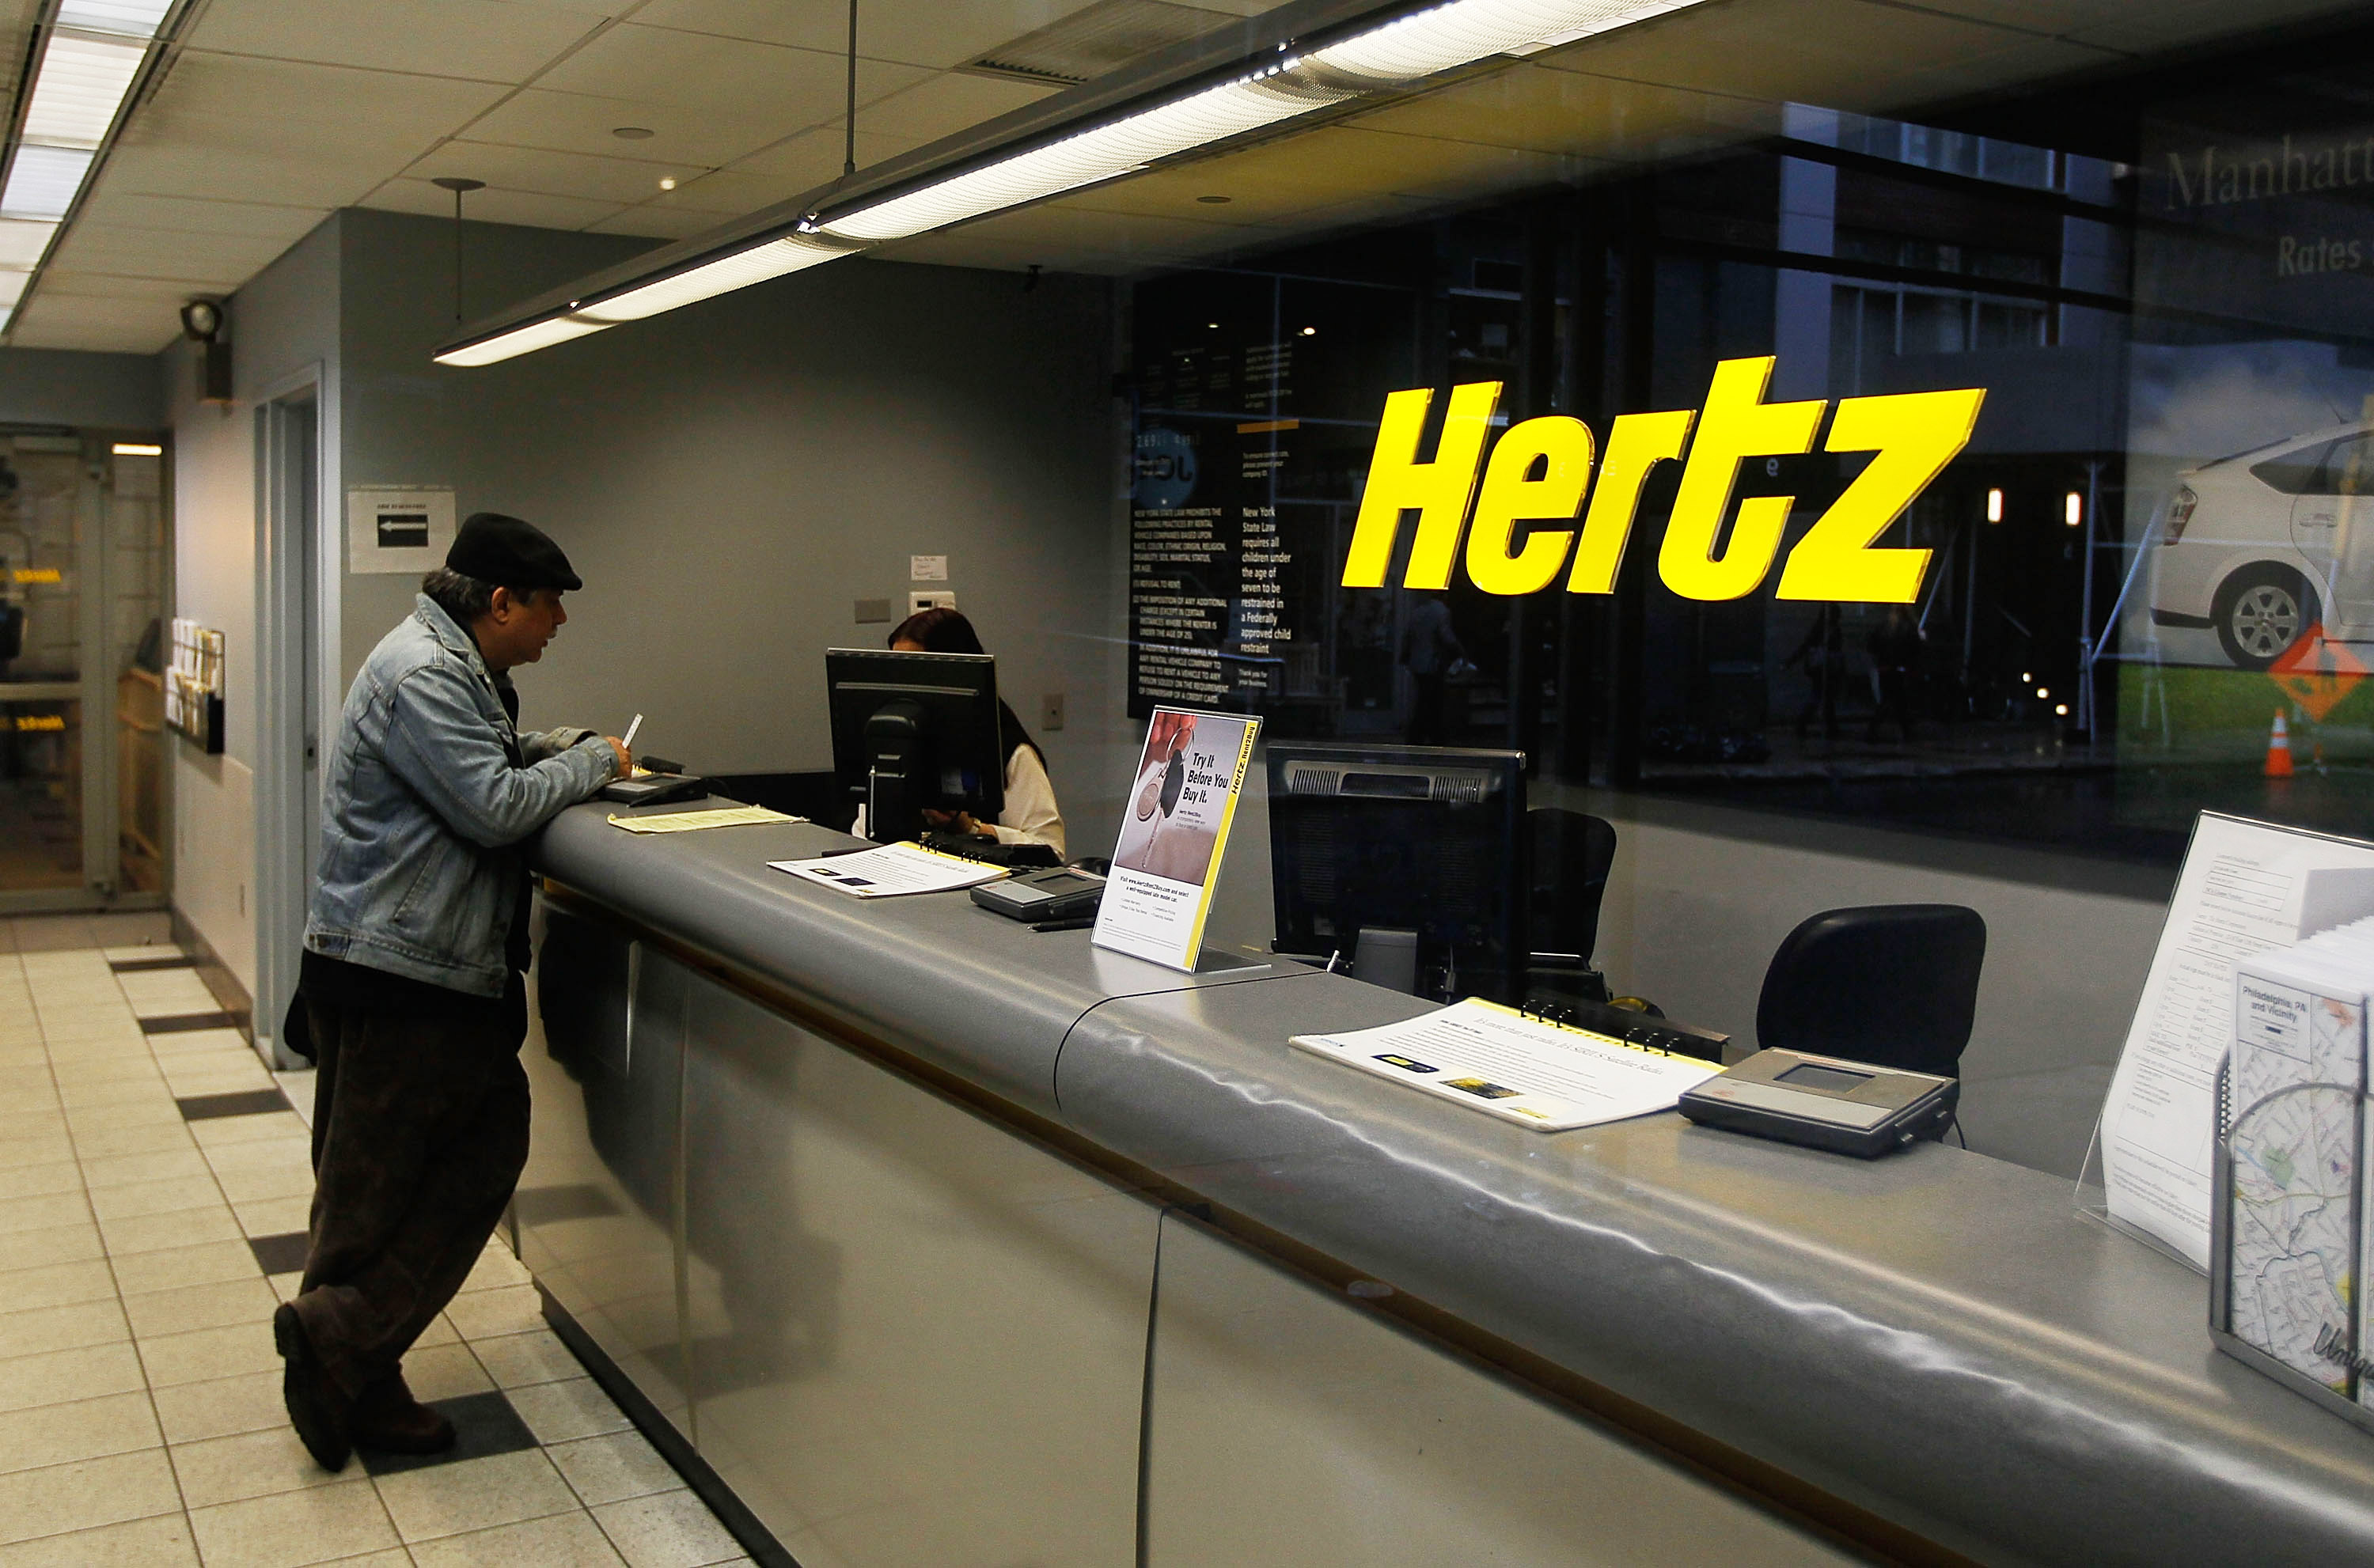 Hertz Acquires Dollar Thrifty For $1.2 Billion